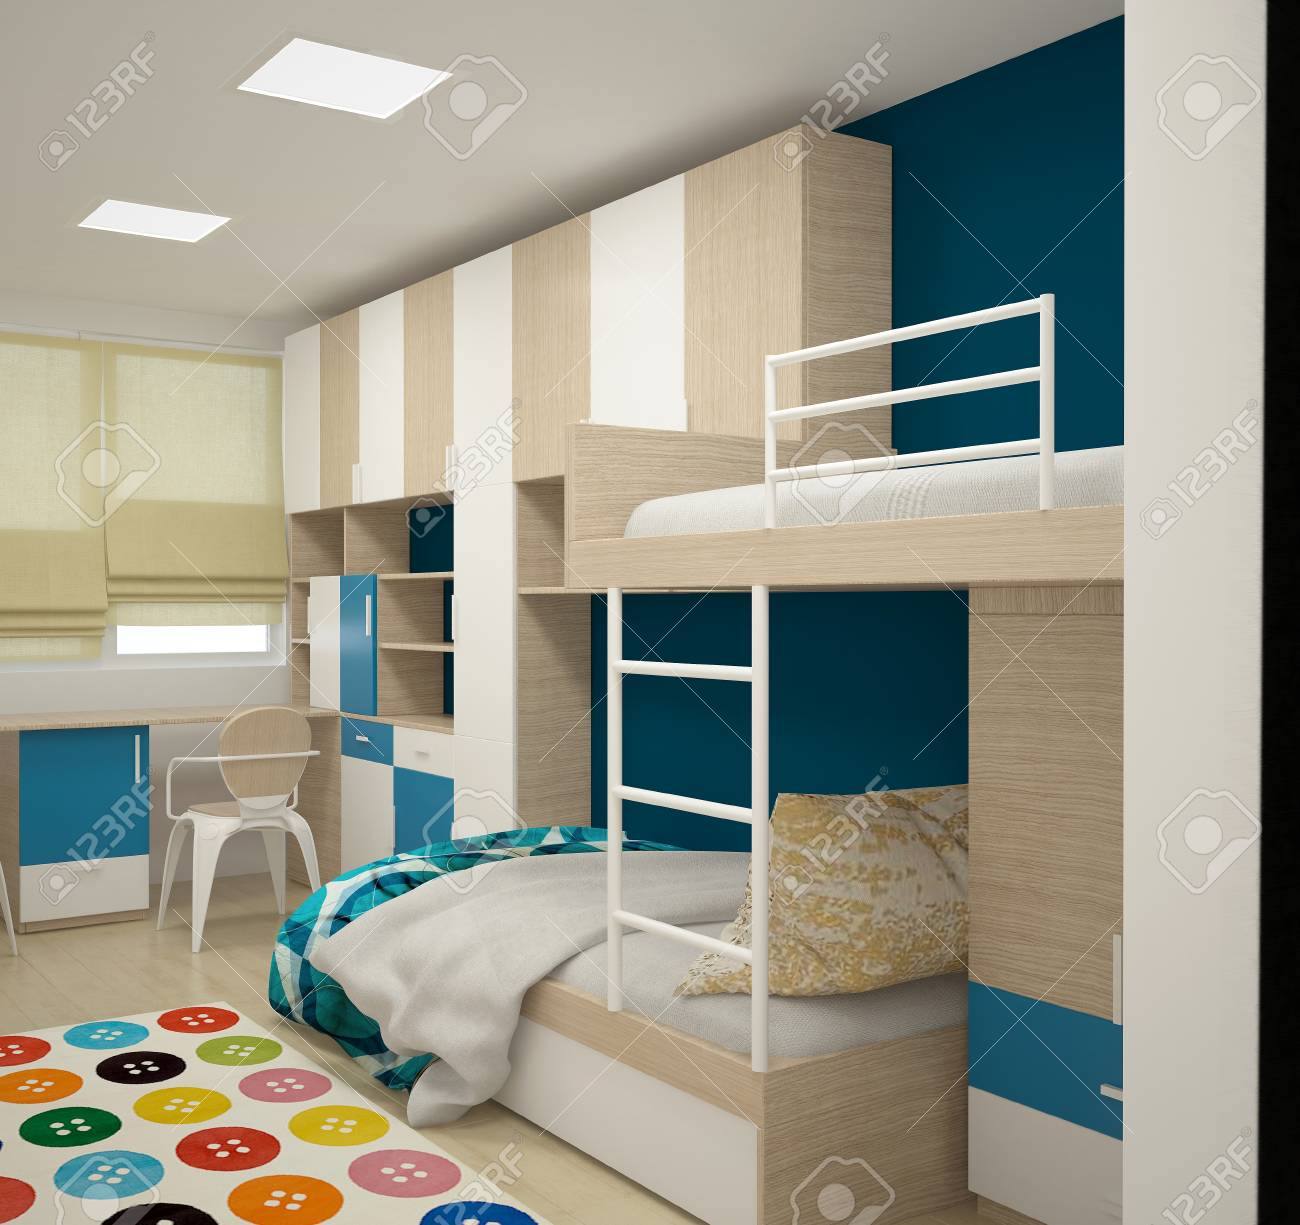 3d Rendering Of A Children S Room Interior Design Stock Photo Picture And Royalty Free Image Image 88367269